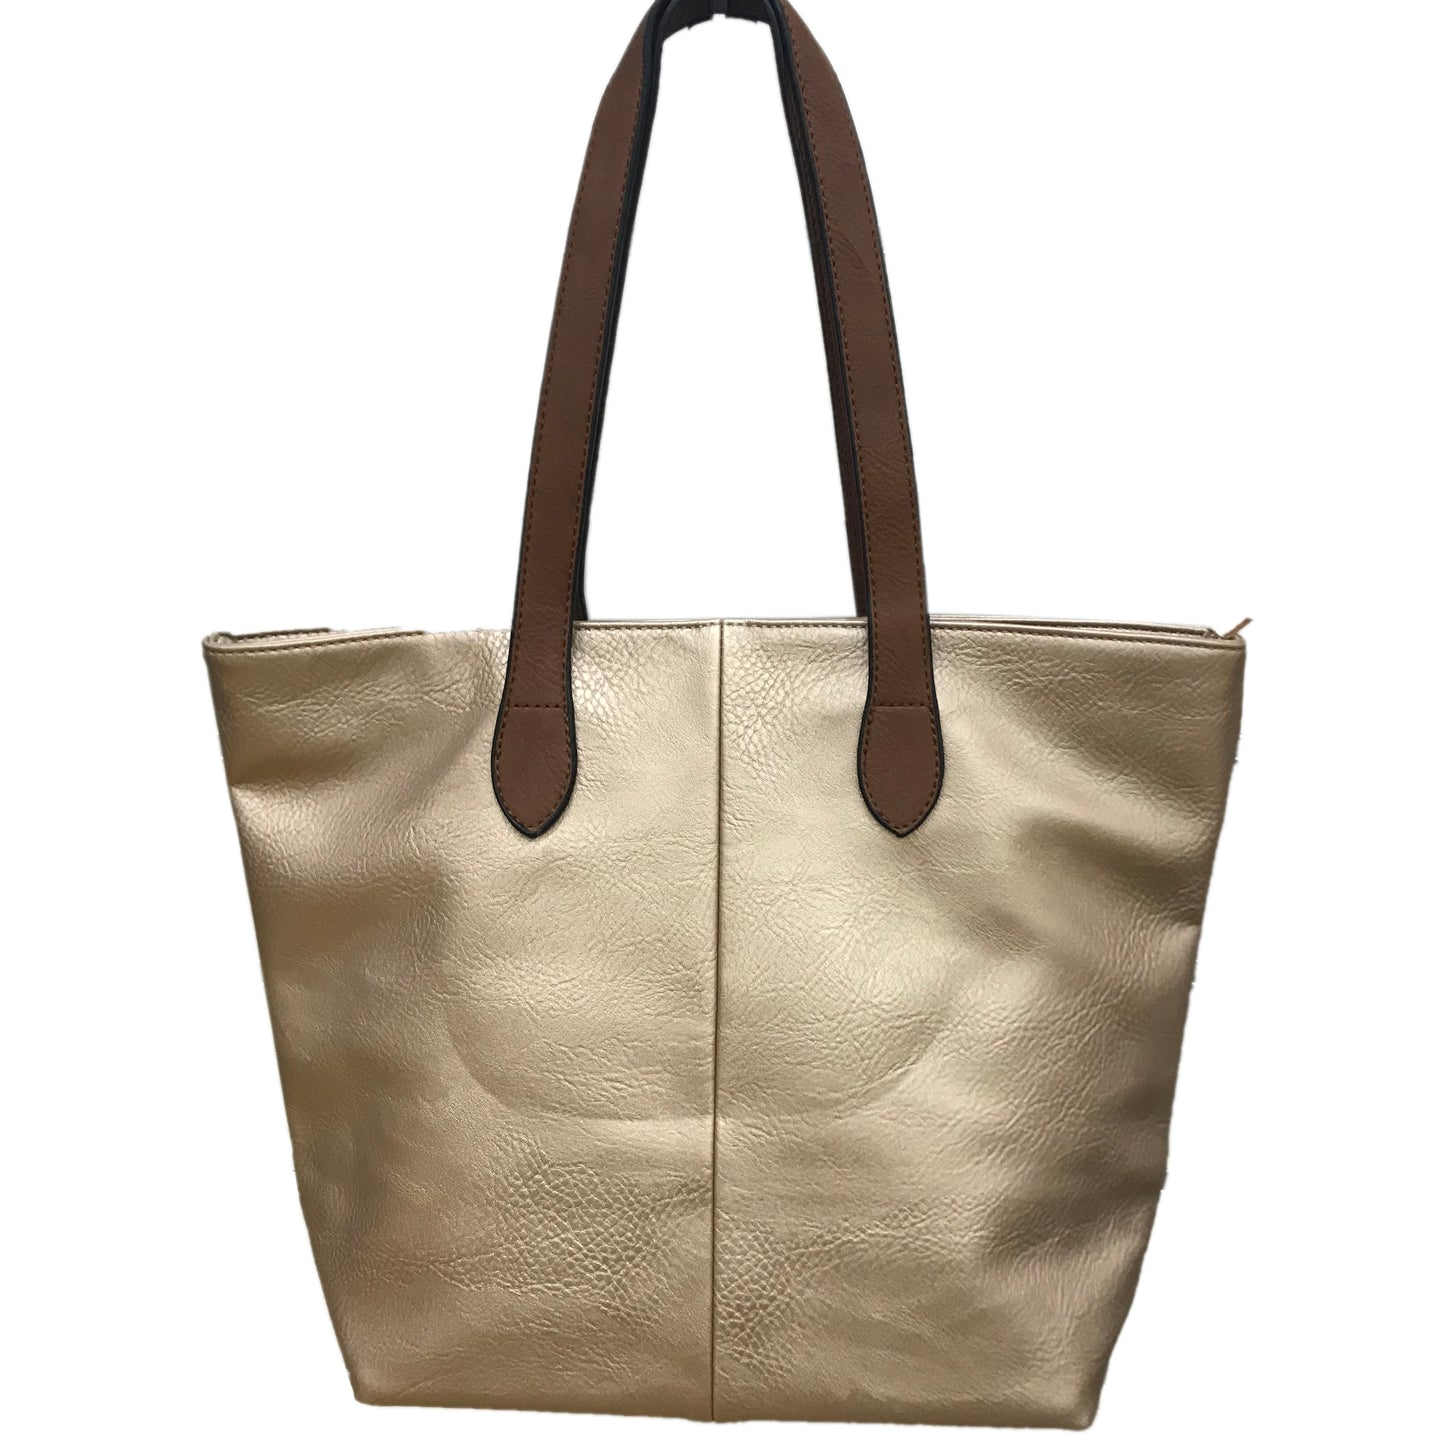 Gold Shopper Bag- Tote handbag